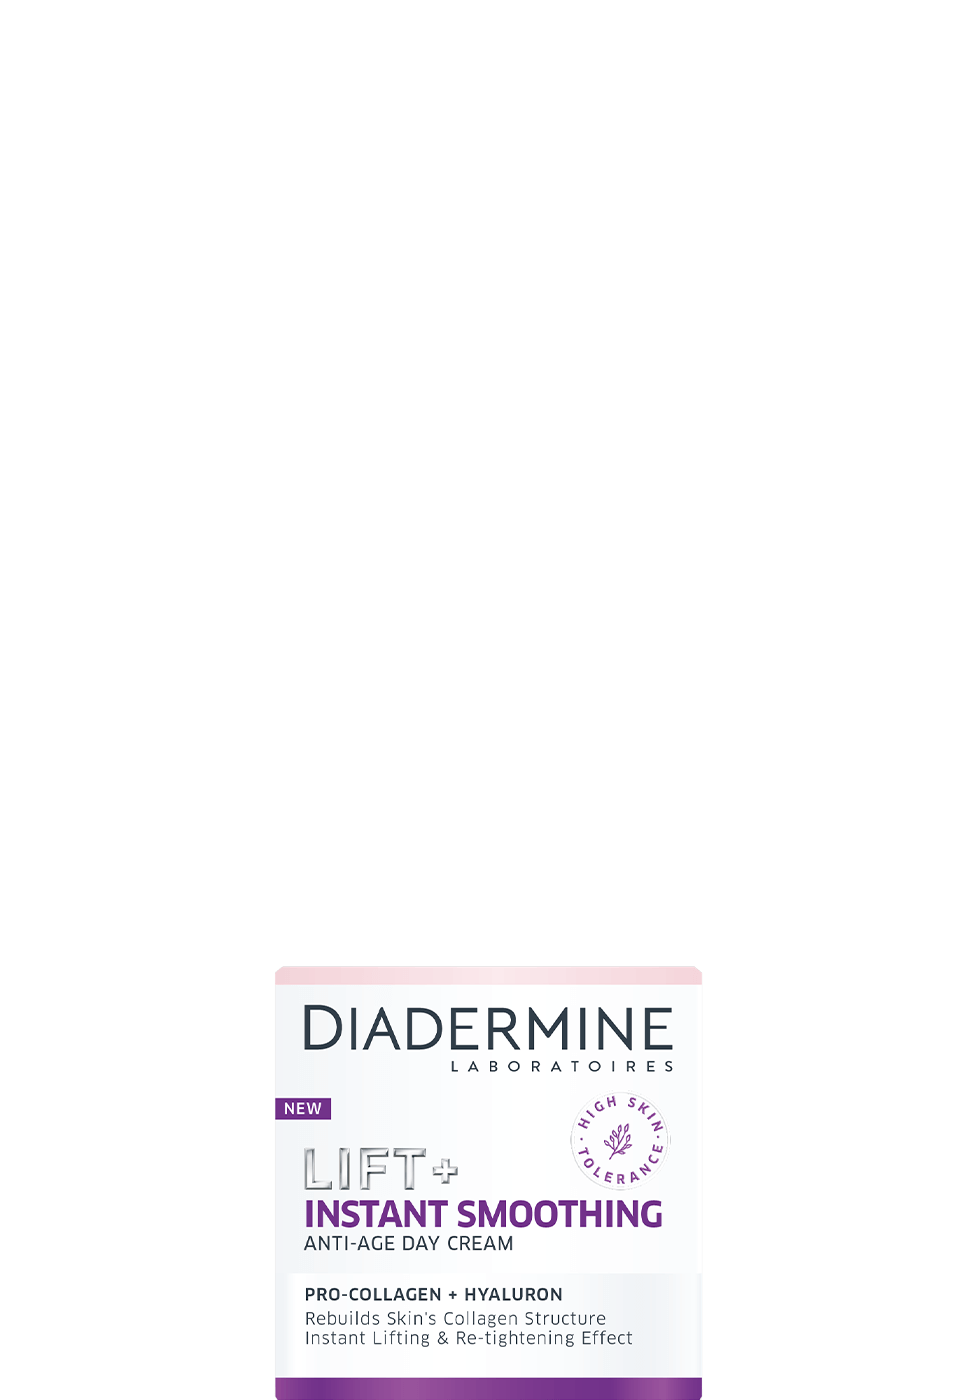 diadermine_com_lift_plus_instant_smoothing_day_cream_970x1400